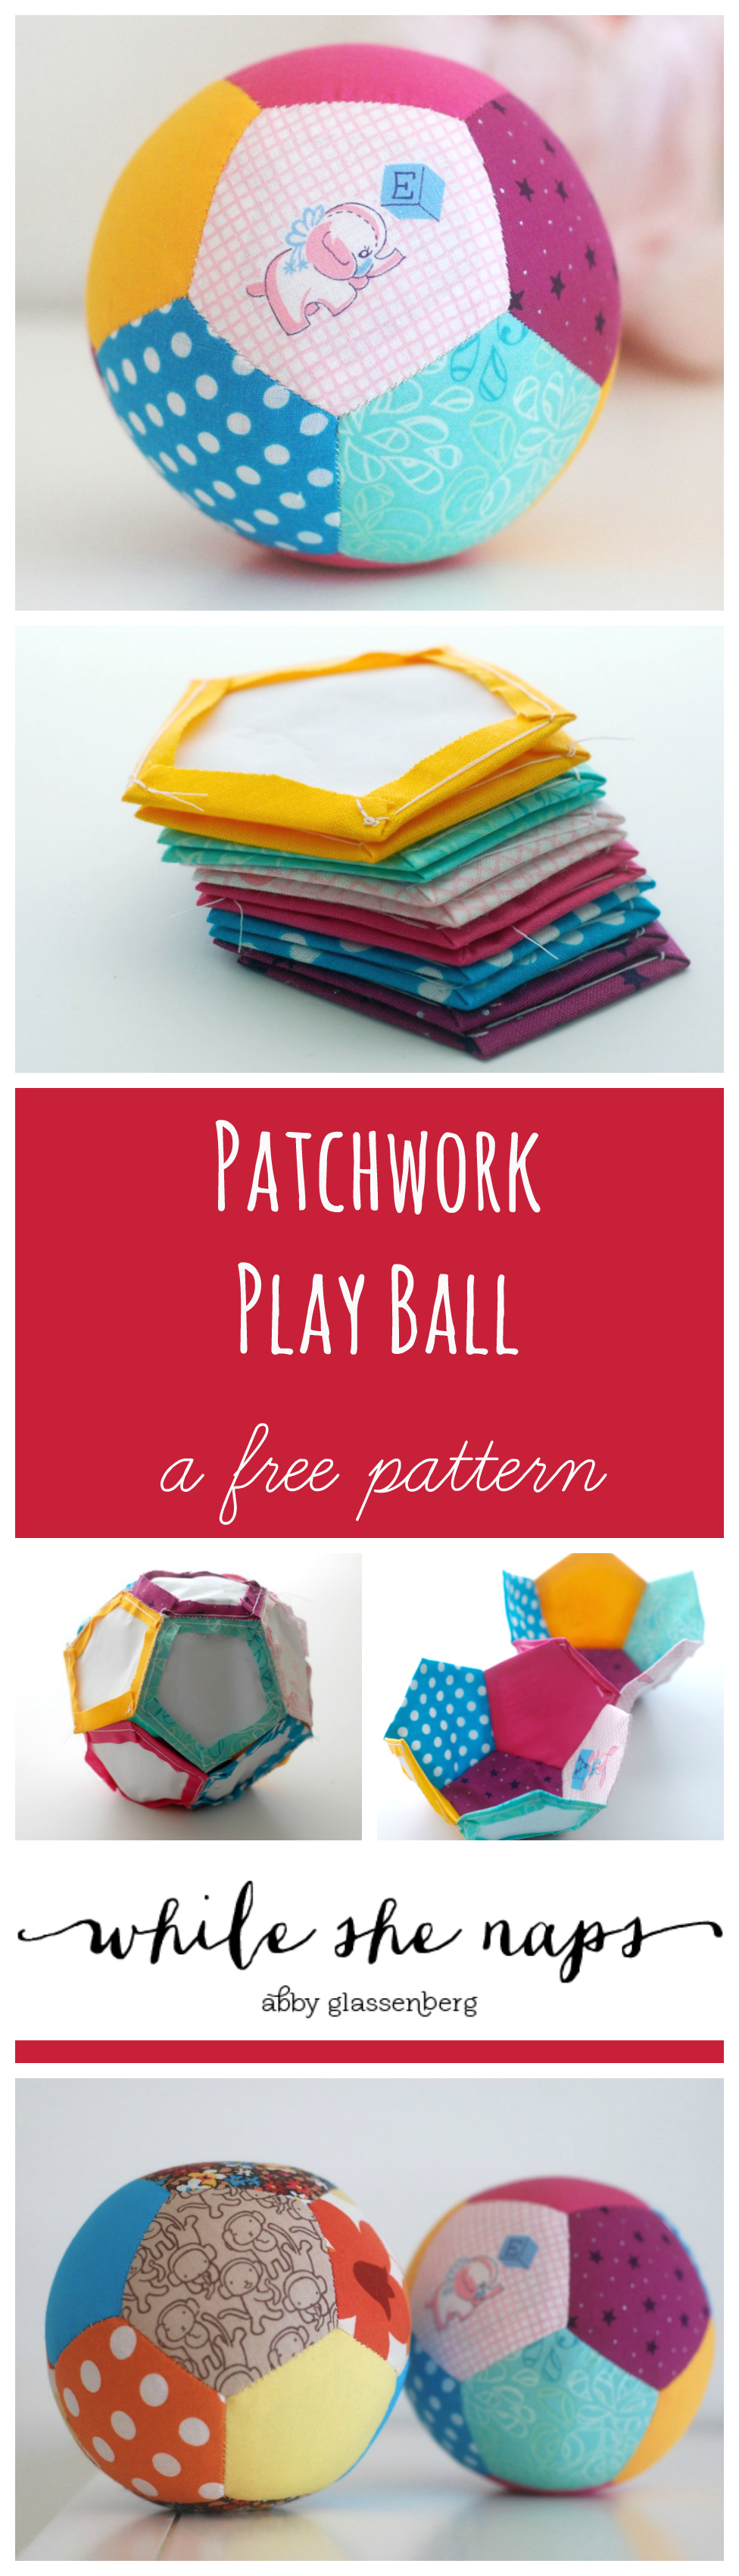 Patchwork Ball Collage